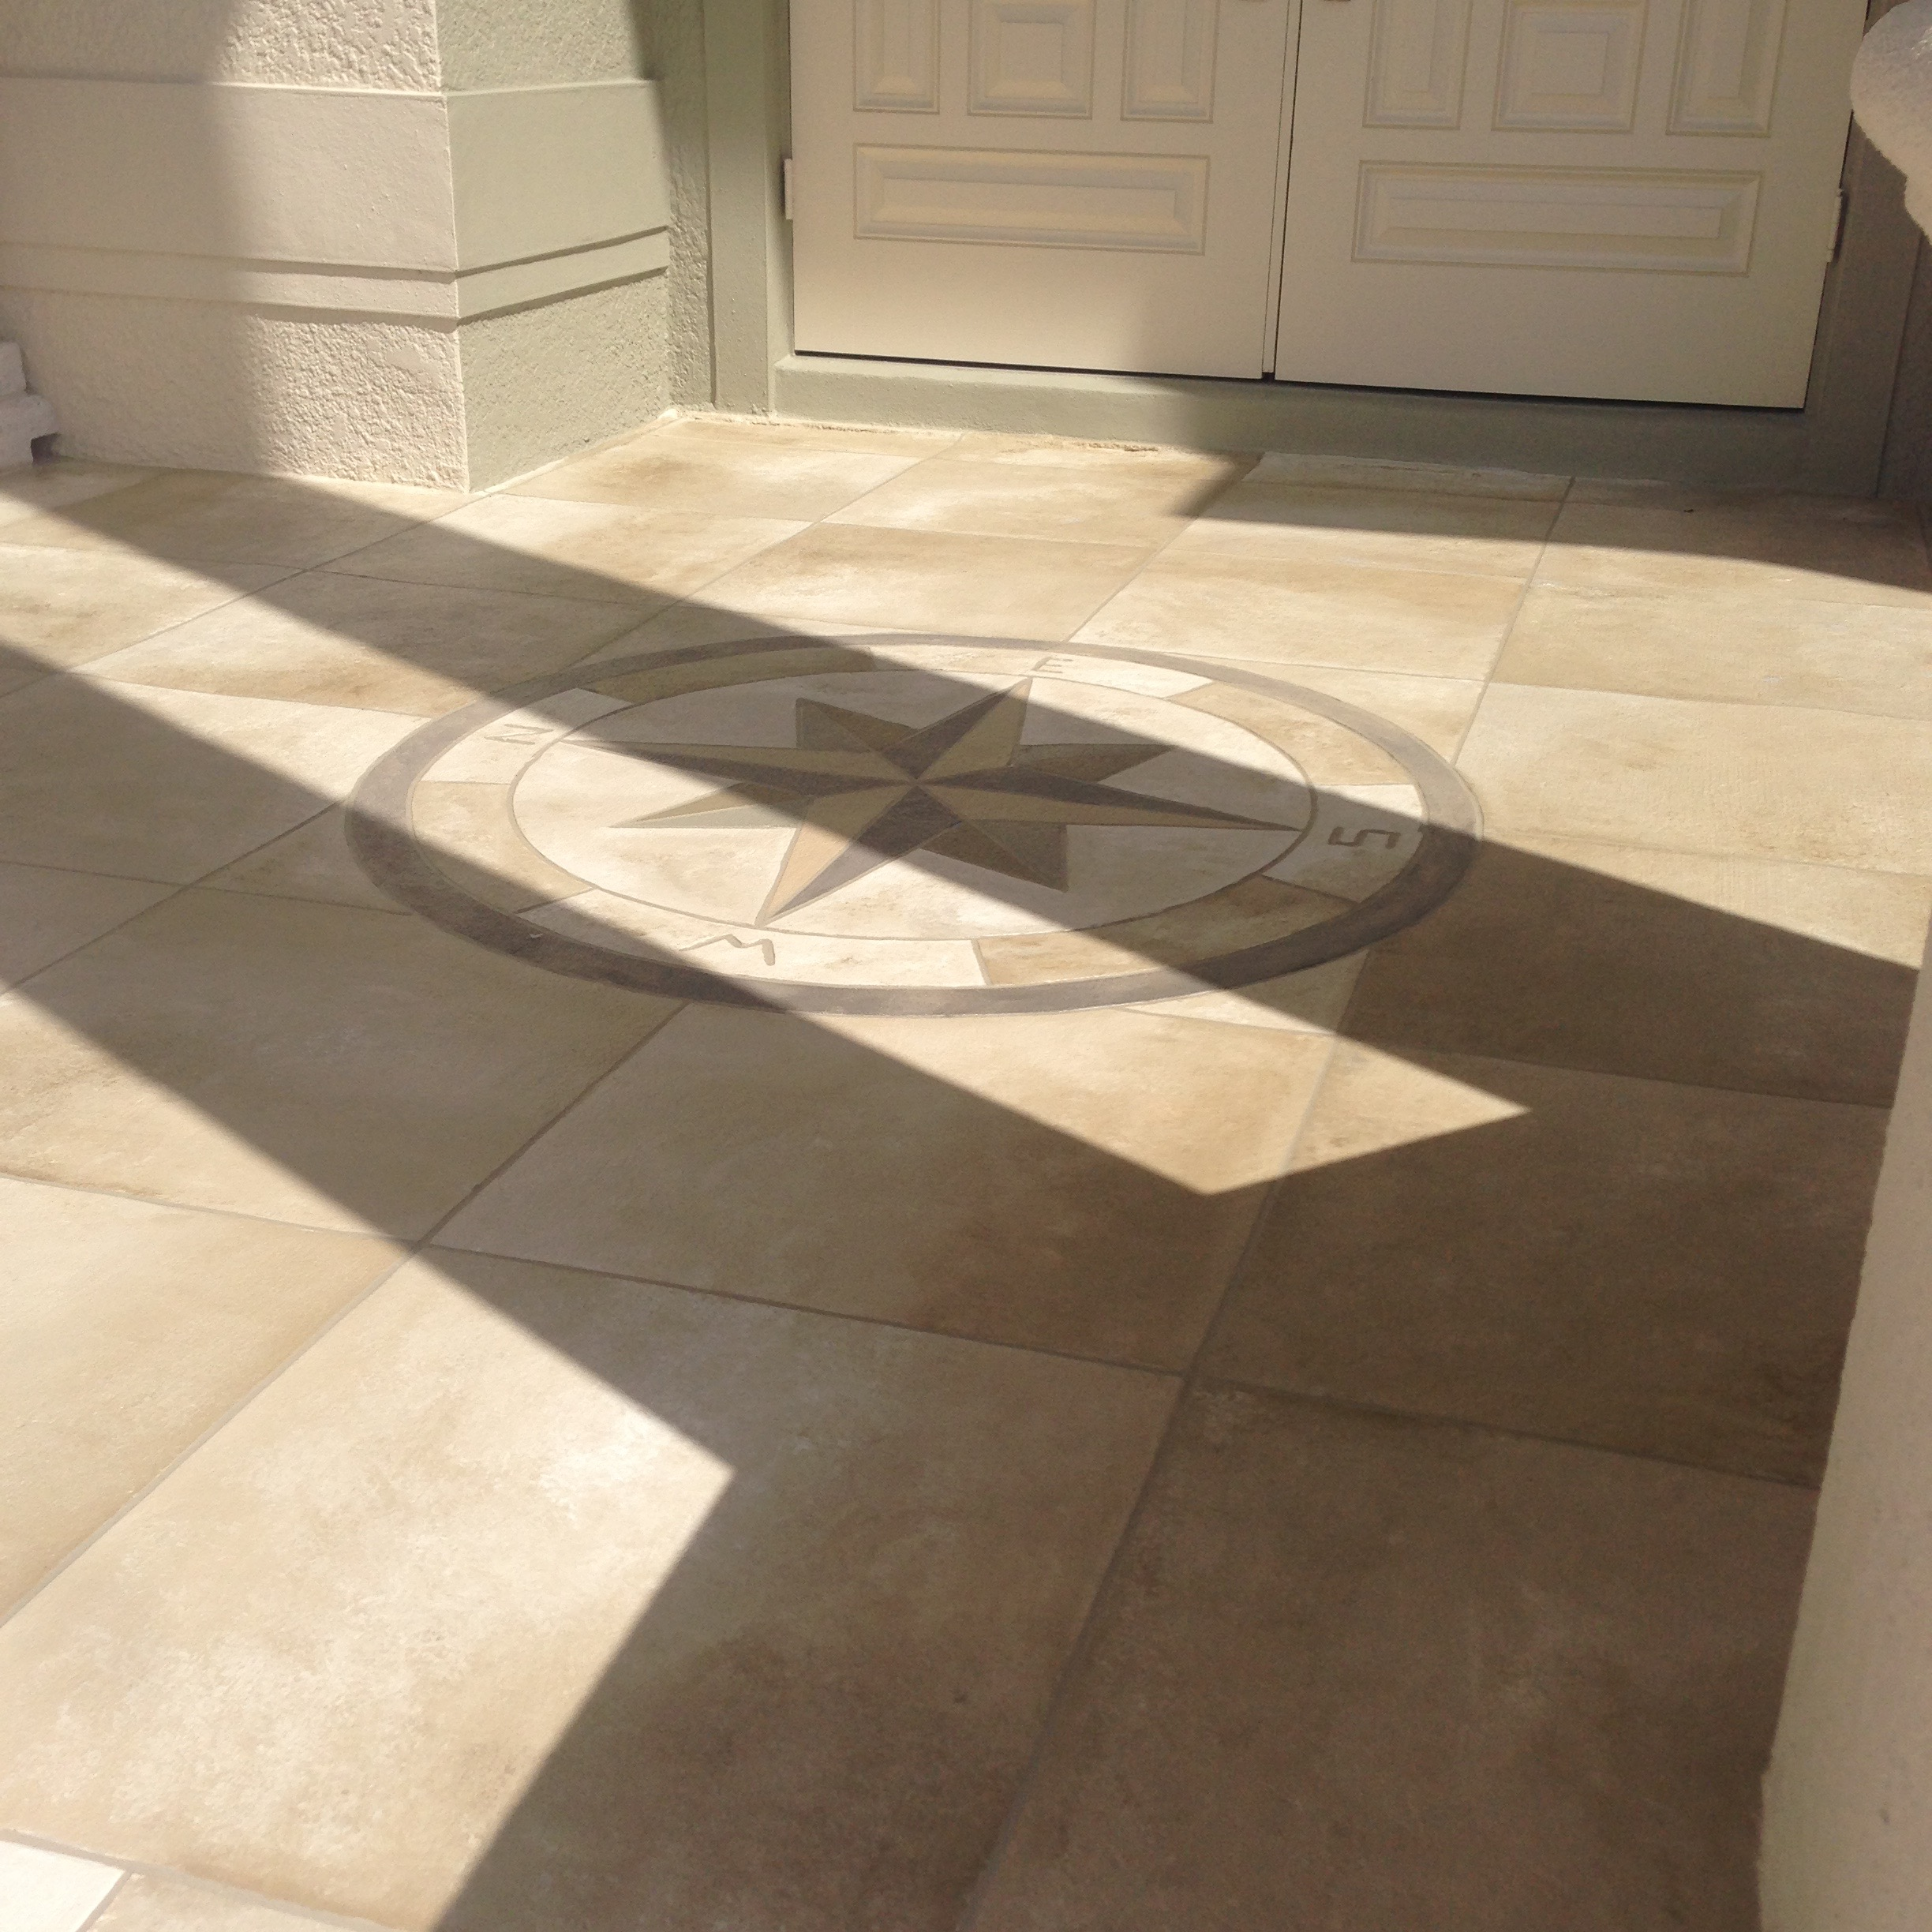 Concrete designs florida travertine tille with accent for Travertine accent tile